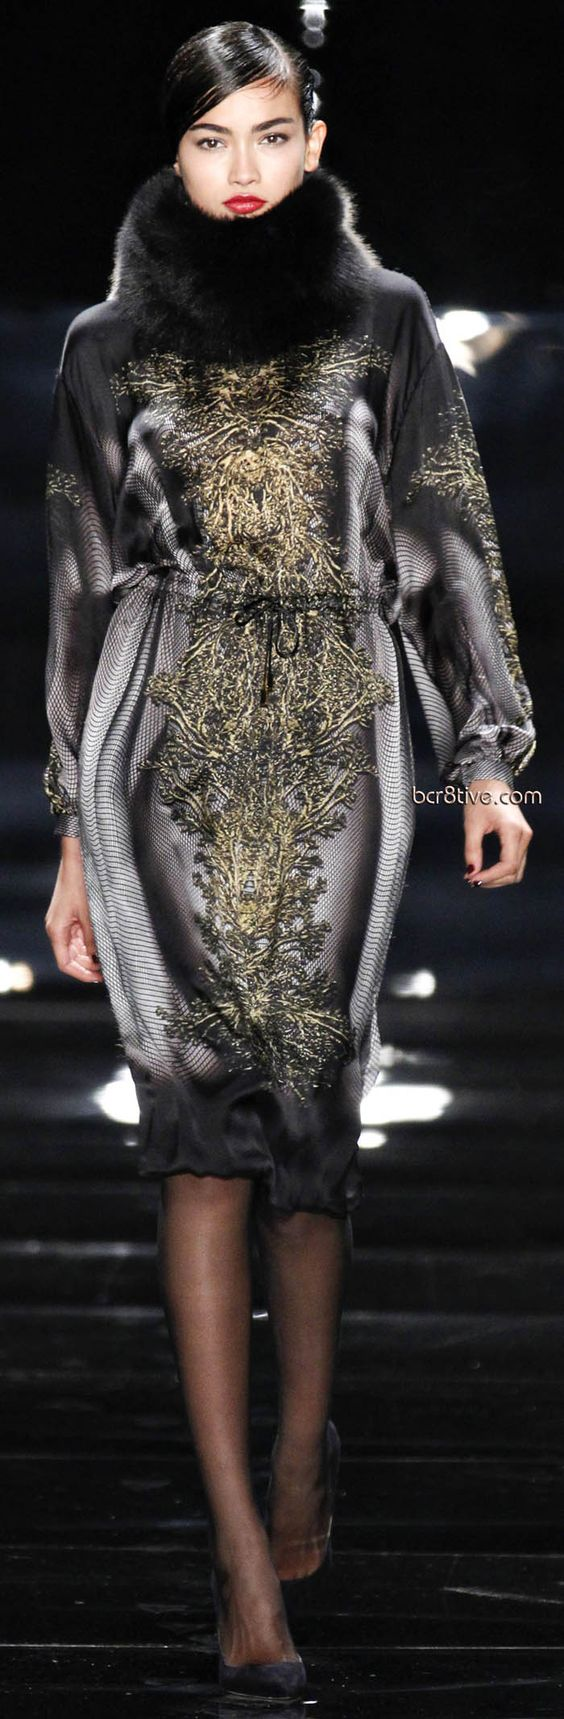 Reem Acra Fall Winter 2013 New York Fashion Week...STUNNING